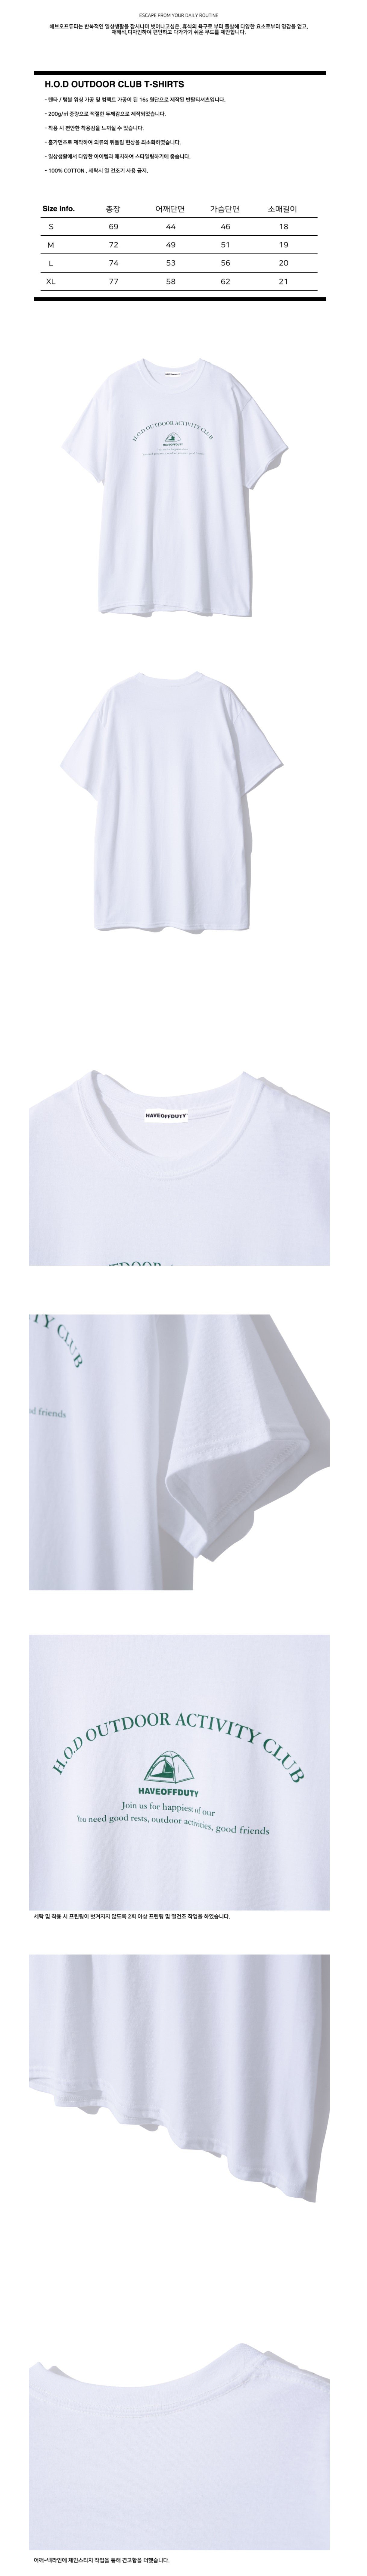 OUTDOOR CLUB T-SHITS (WHITE)